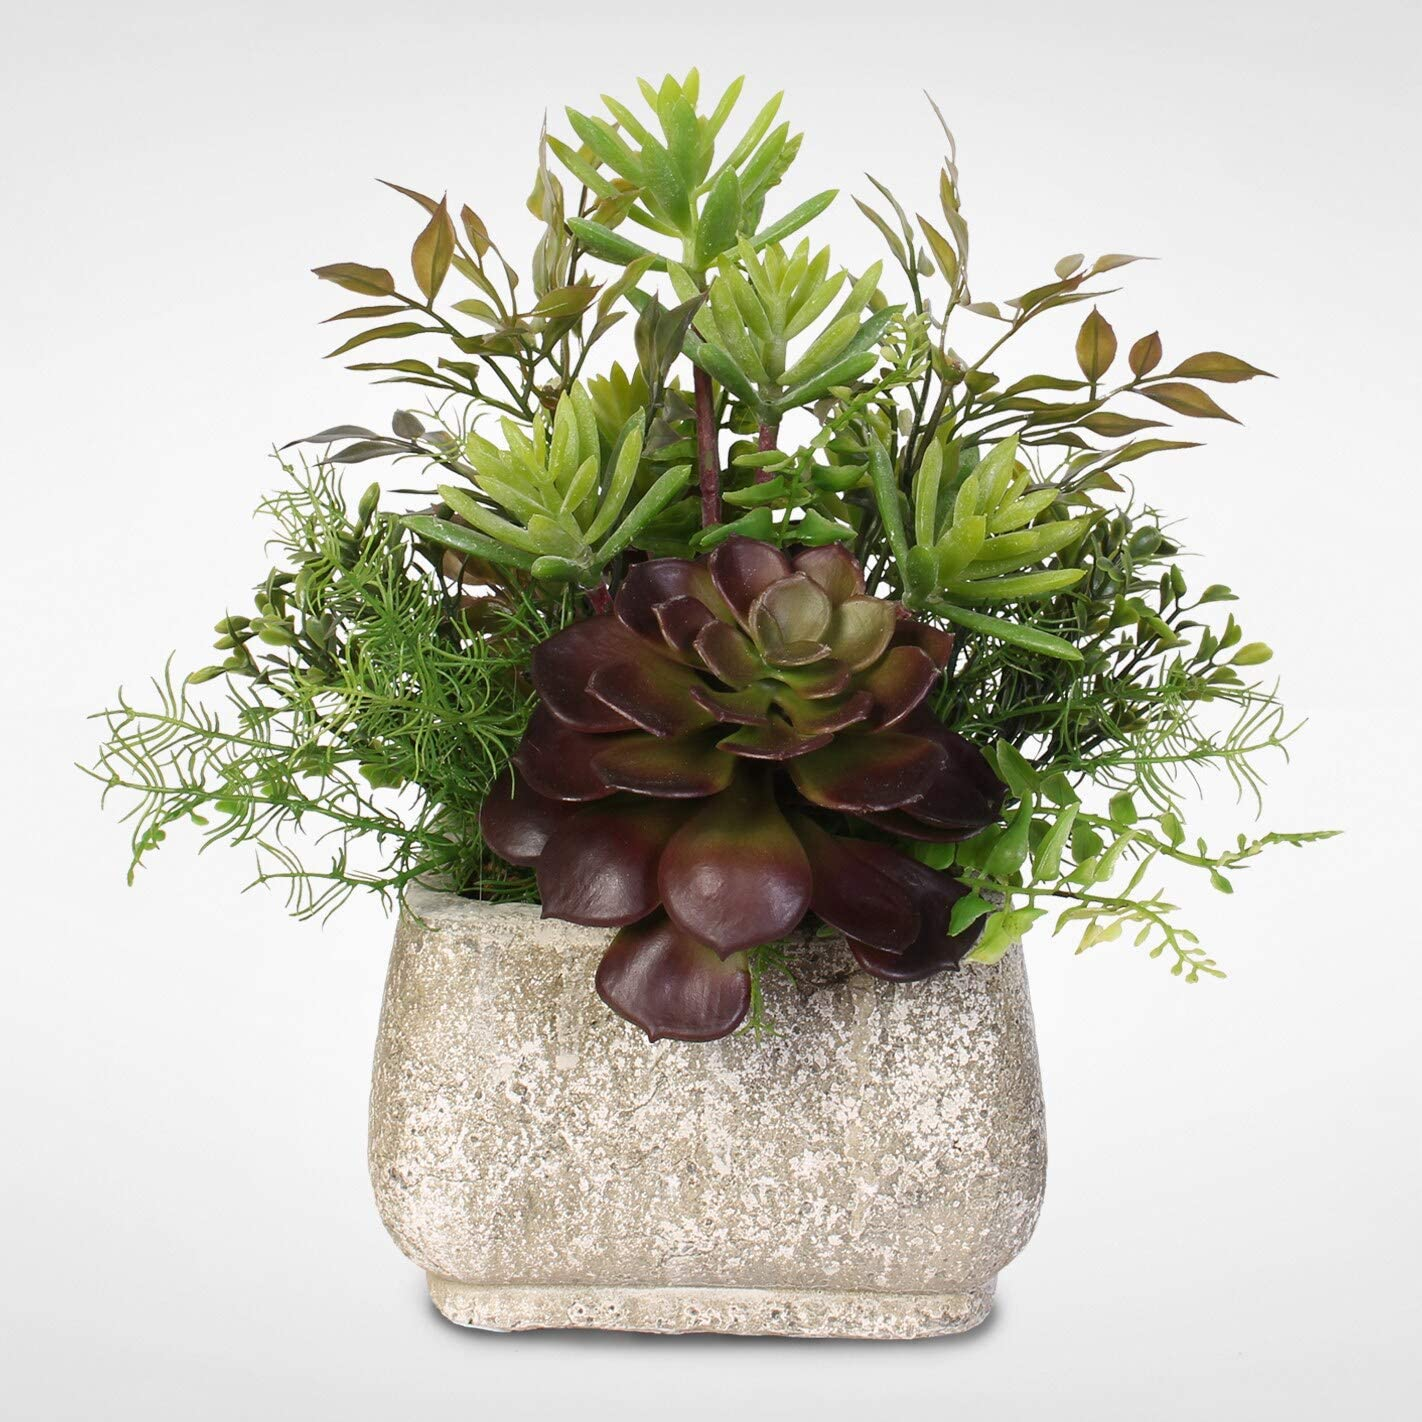 Artificial Succulent Arrangement Free shipping anywhere in the Genuine Free Shipping nation Pot A Stone